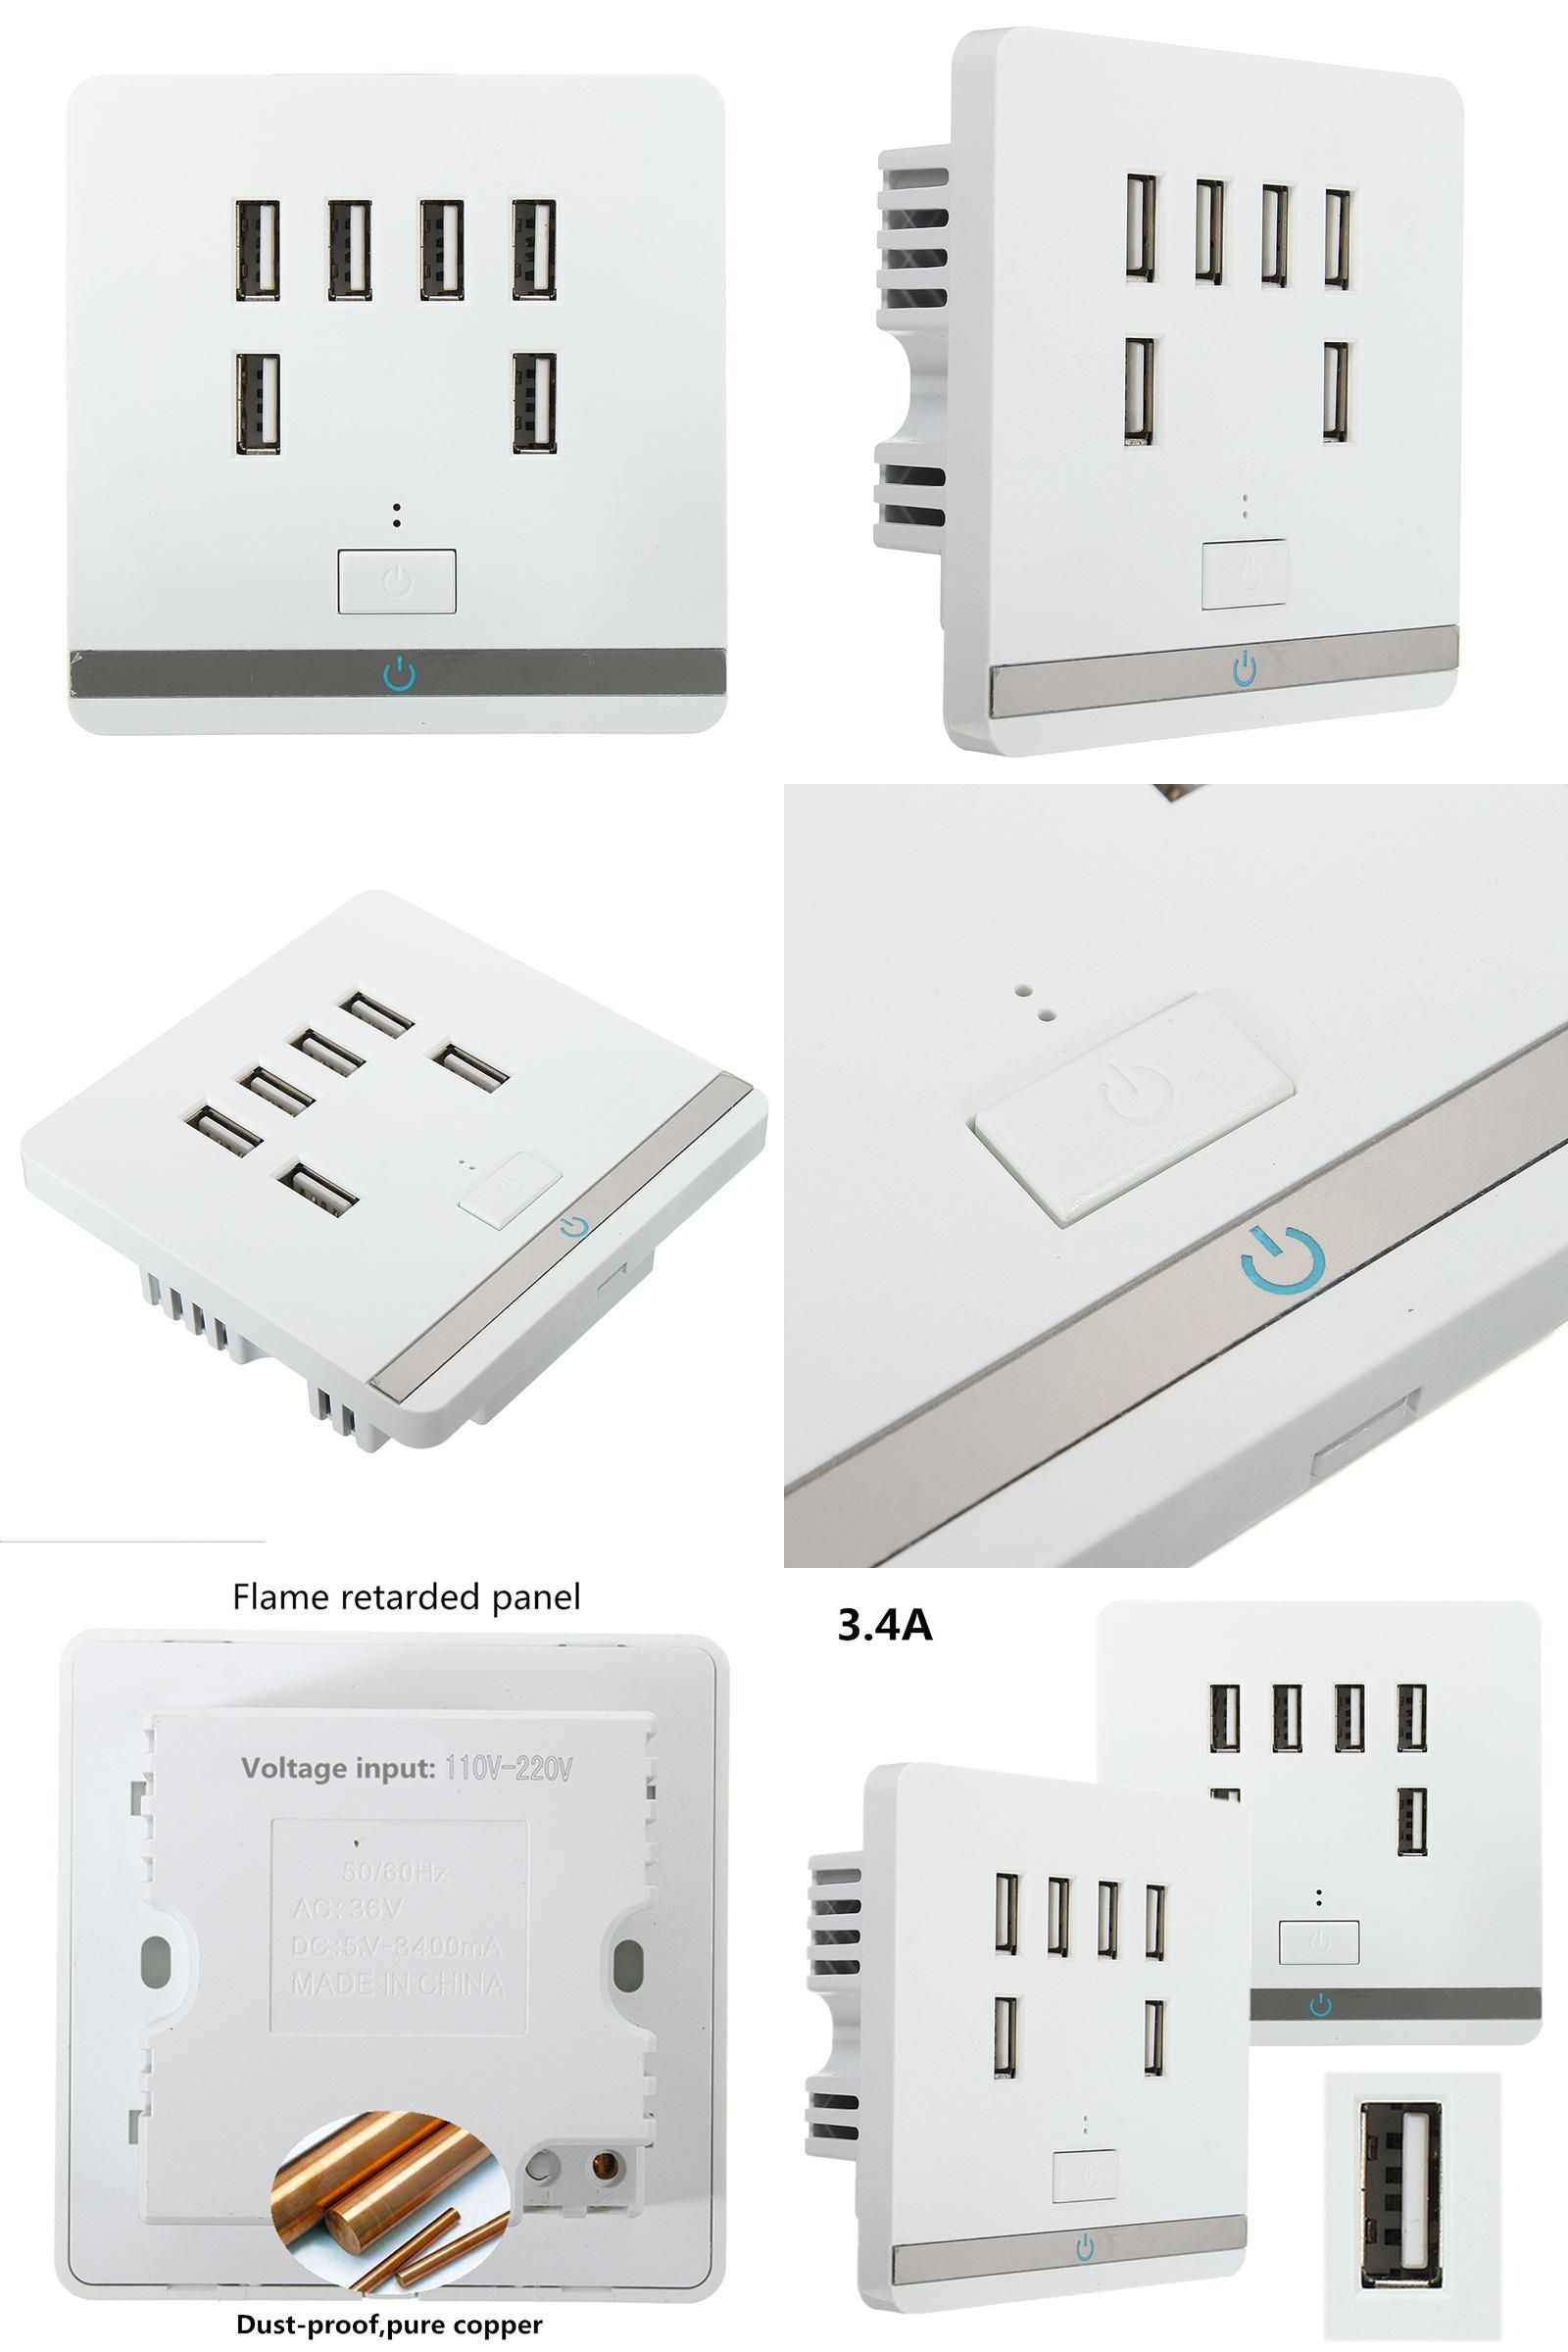 Visit to Buy] 2.1A 6 USB Port Standard Wall Electrical Socket Home ...